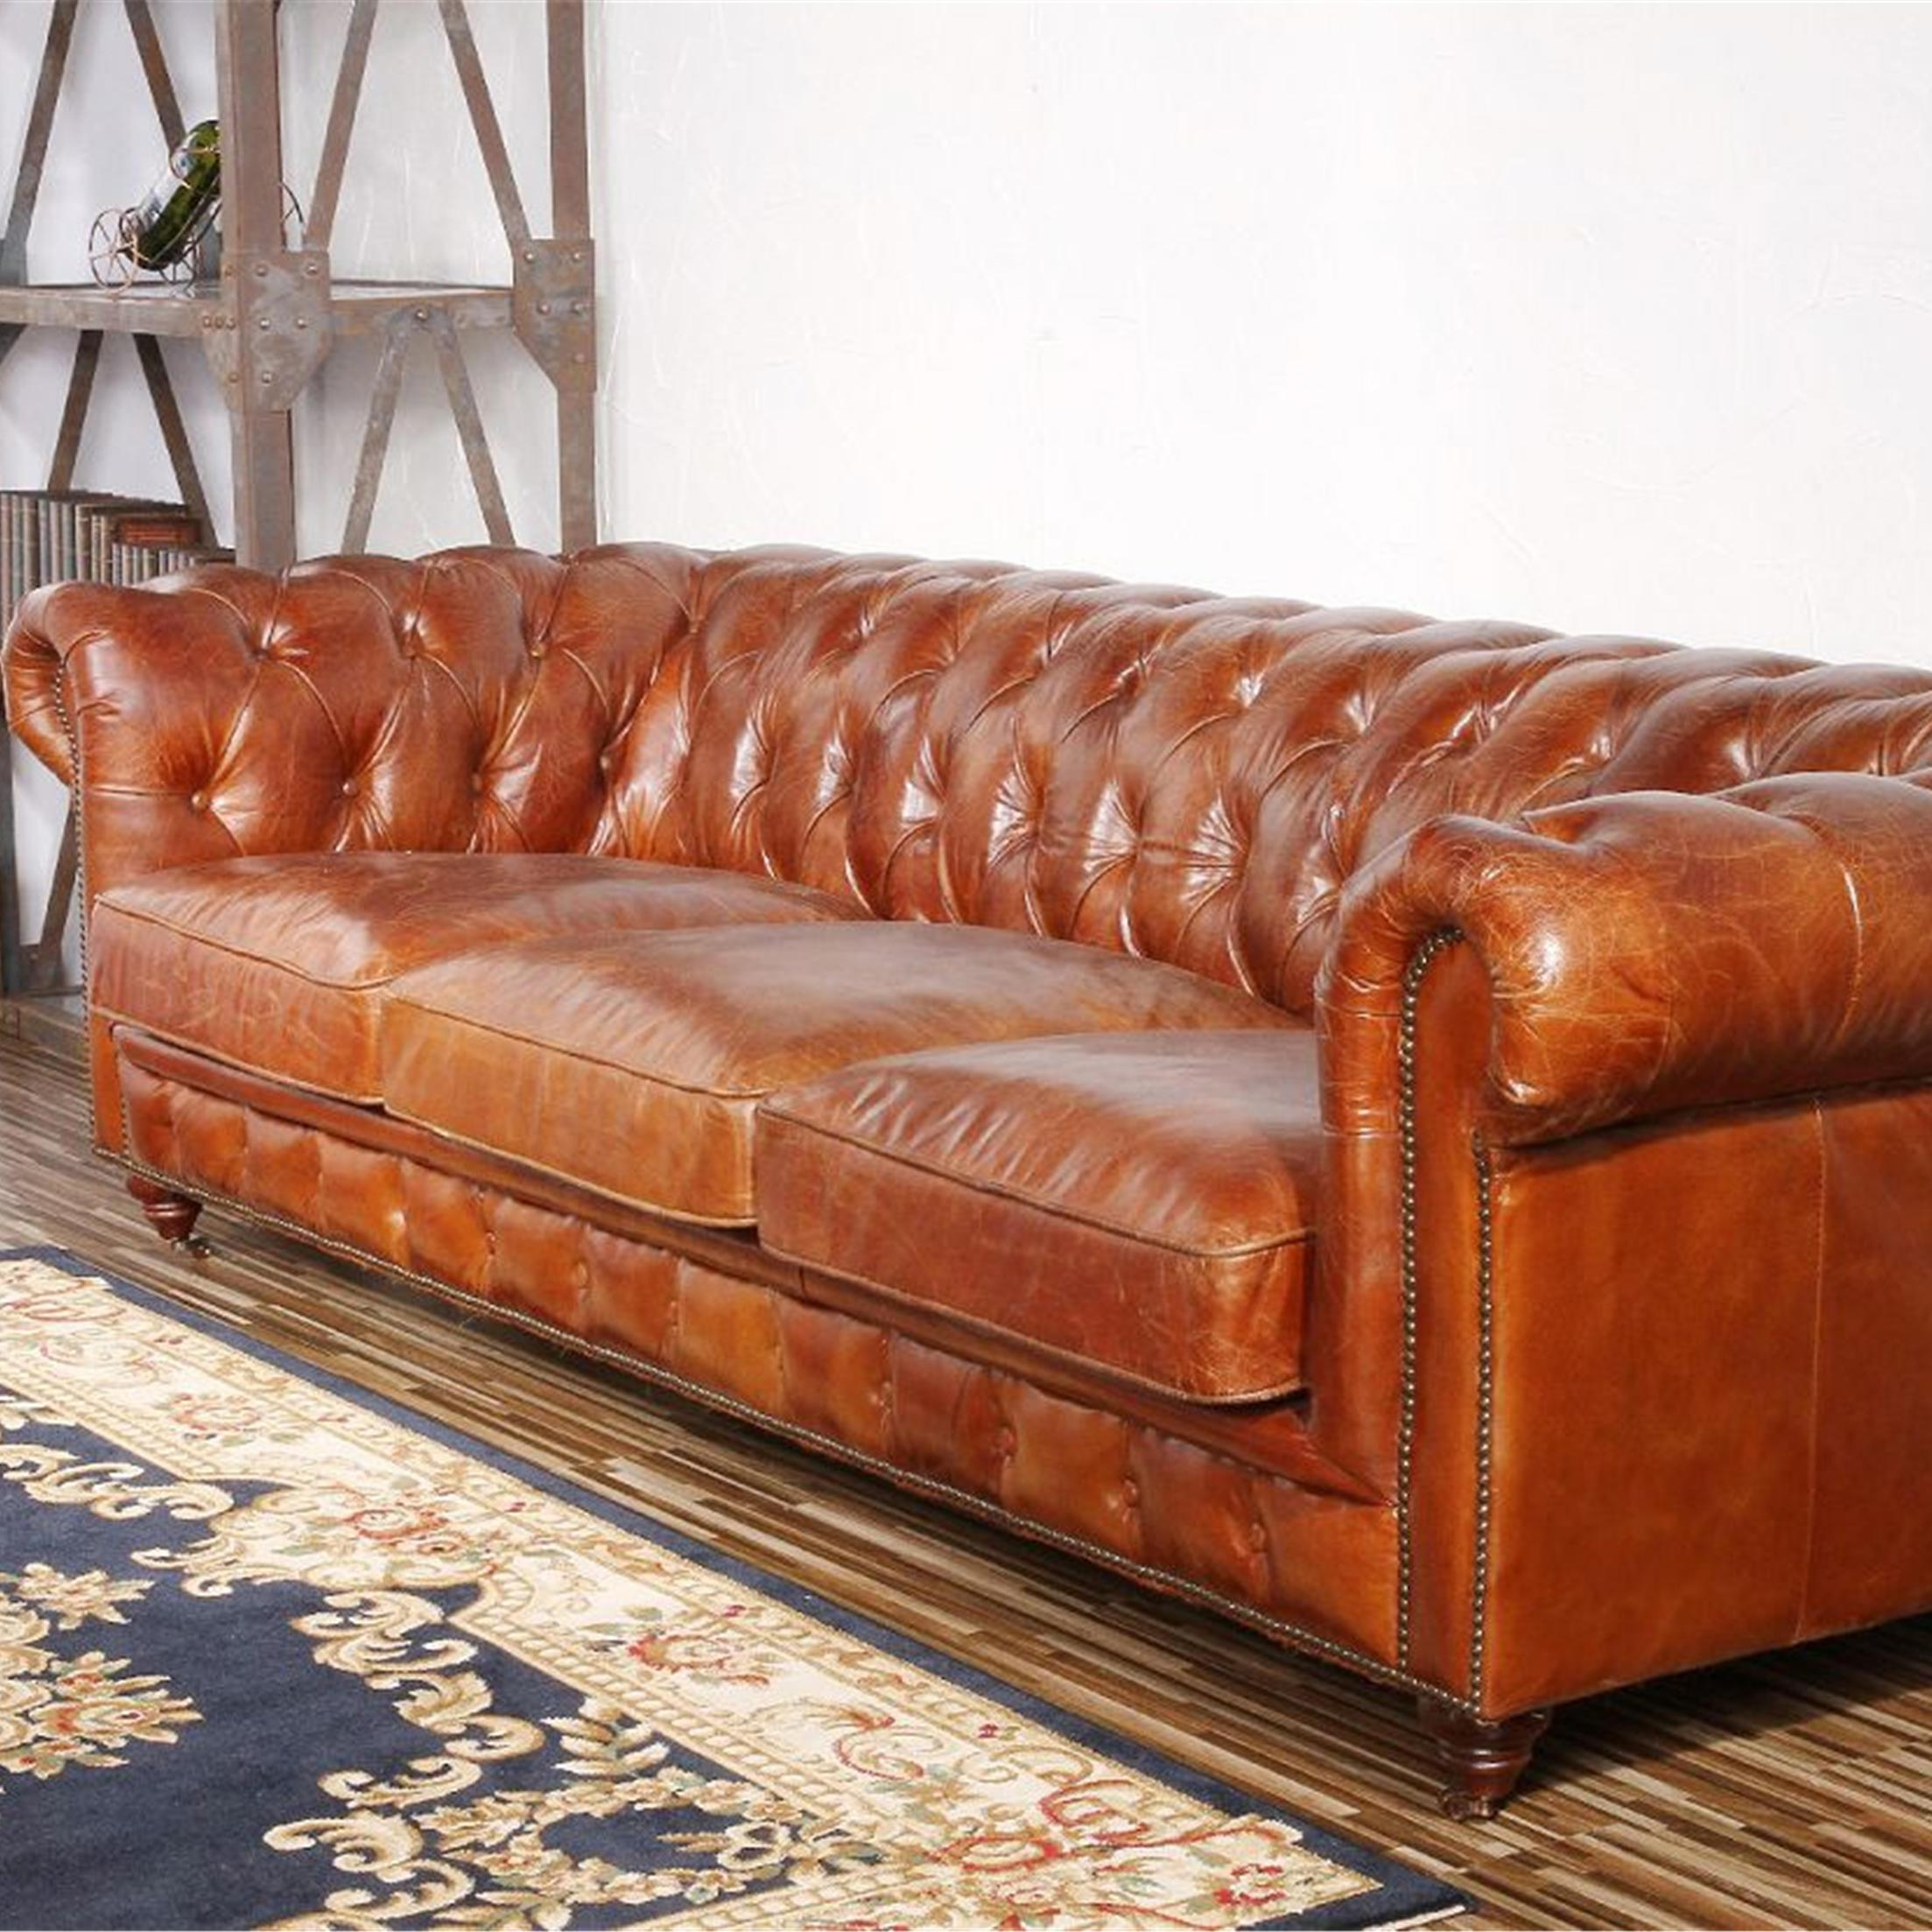 Furniture: Exquisite Comfort With Leather Tufted Sofa Throughout Caramel Leather Sofas (View 15 of 20)